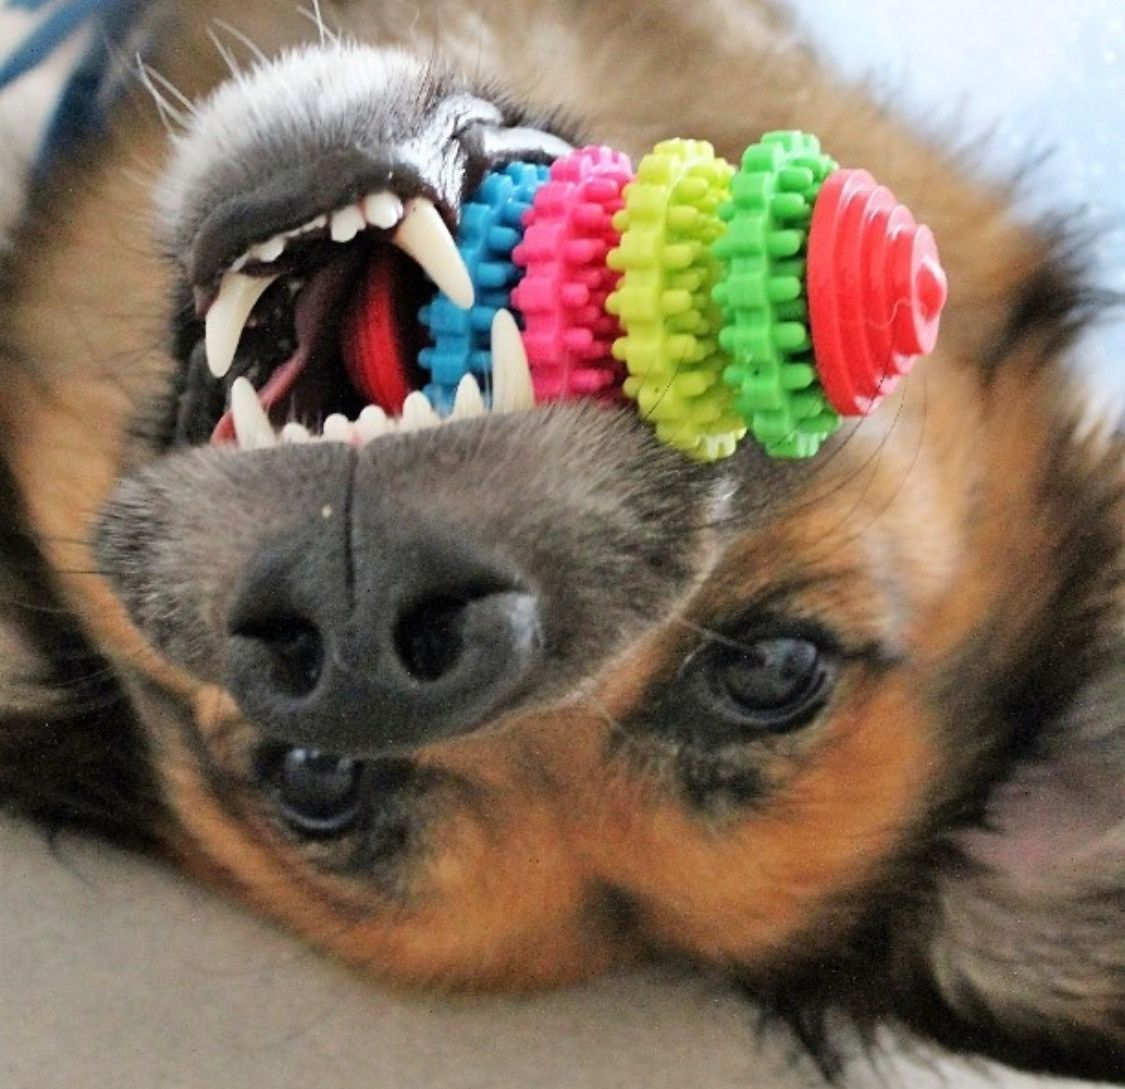 Paw Prime's Teeth Cleaning Toy | Coconut oil for dogs ...